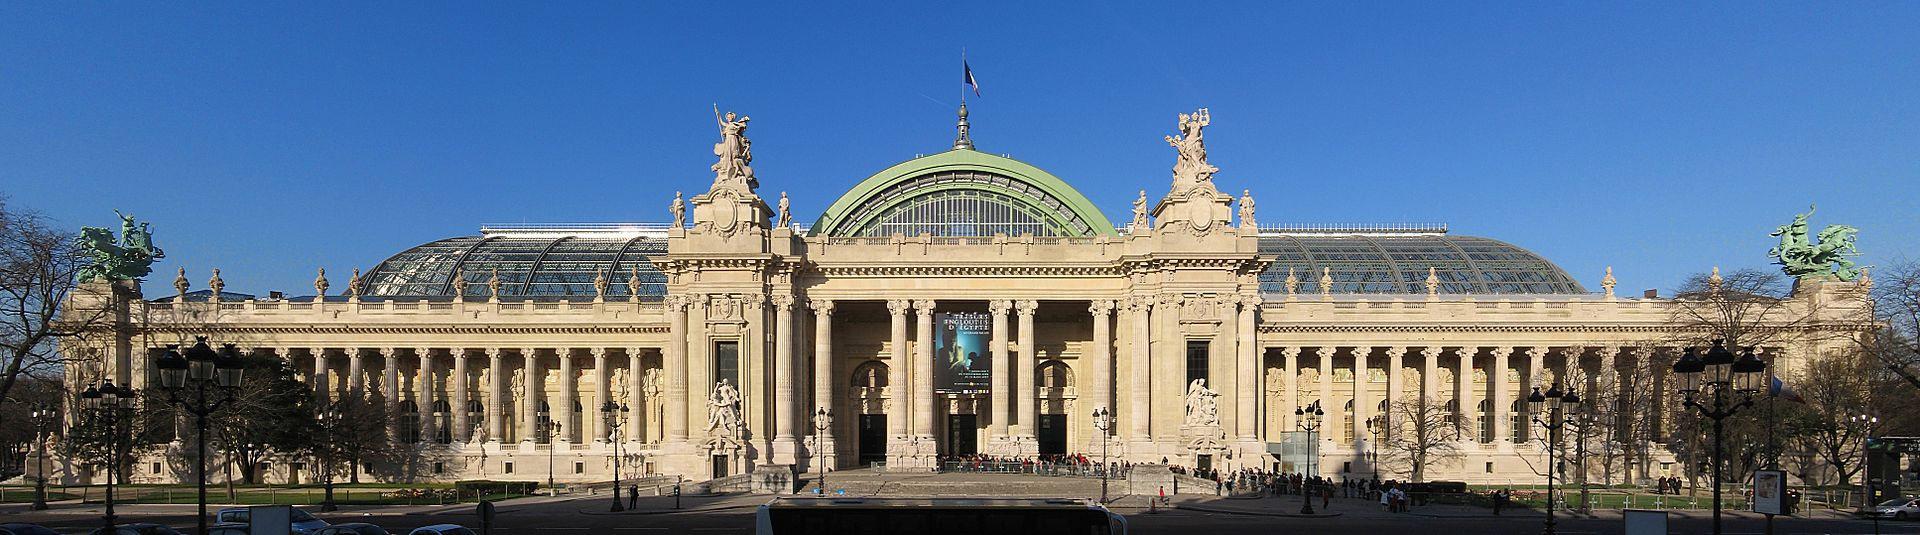 panoramiquegrandpalais